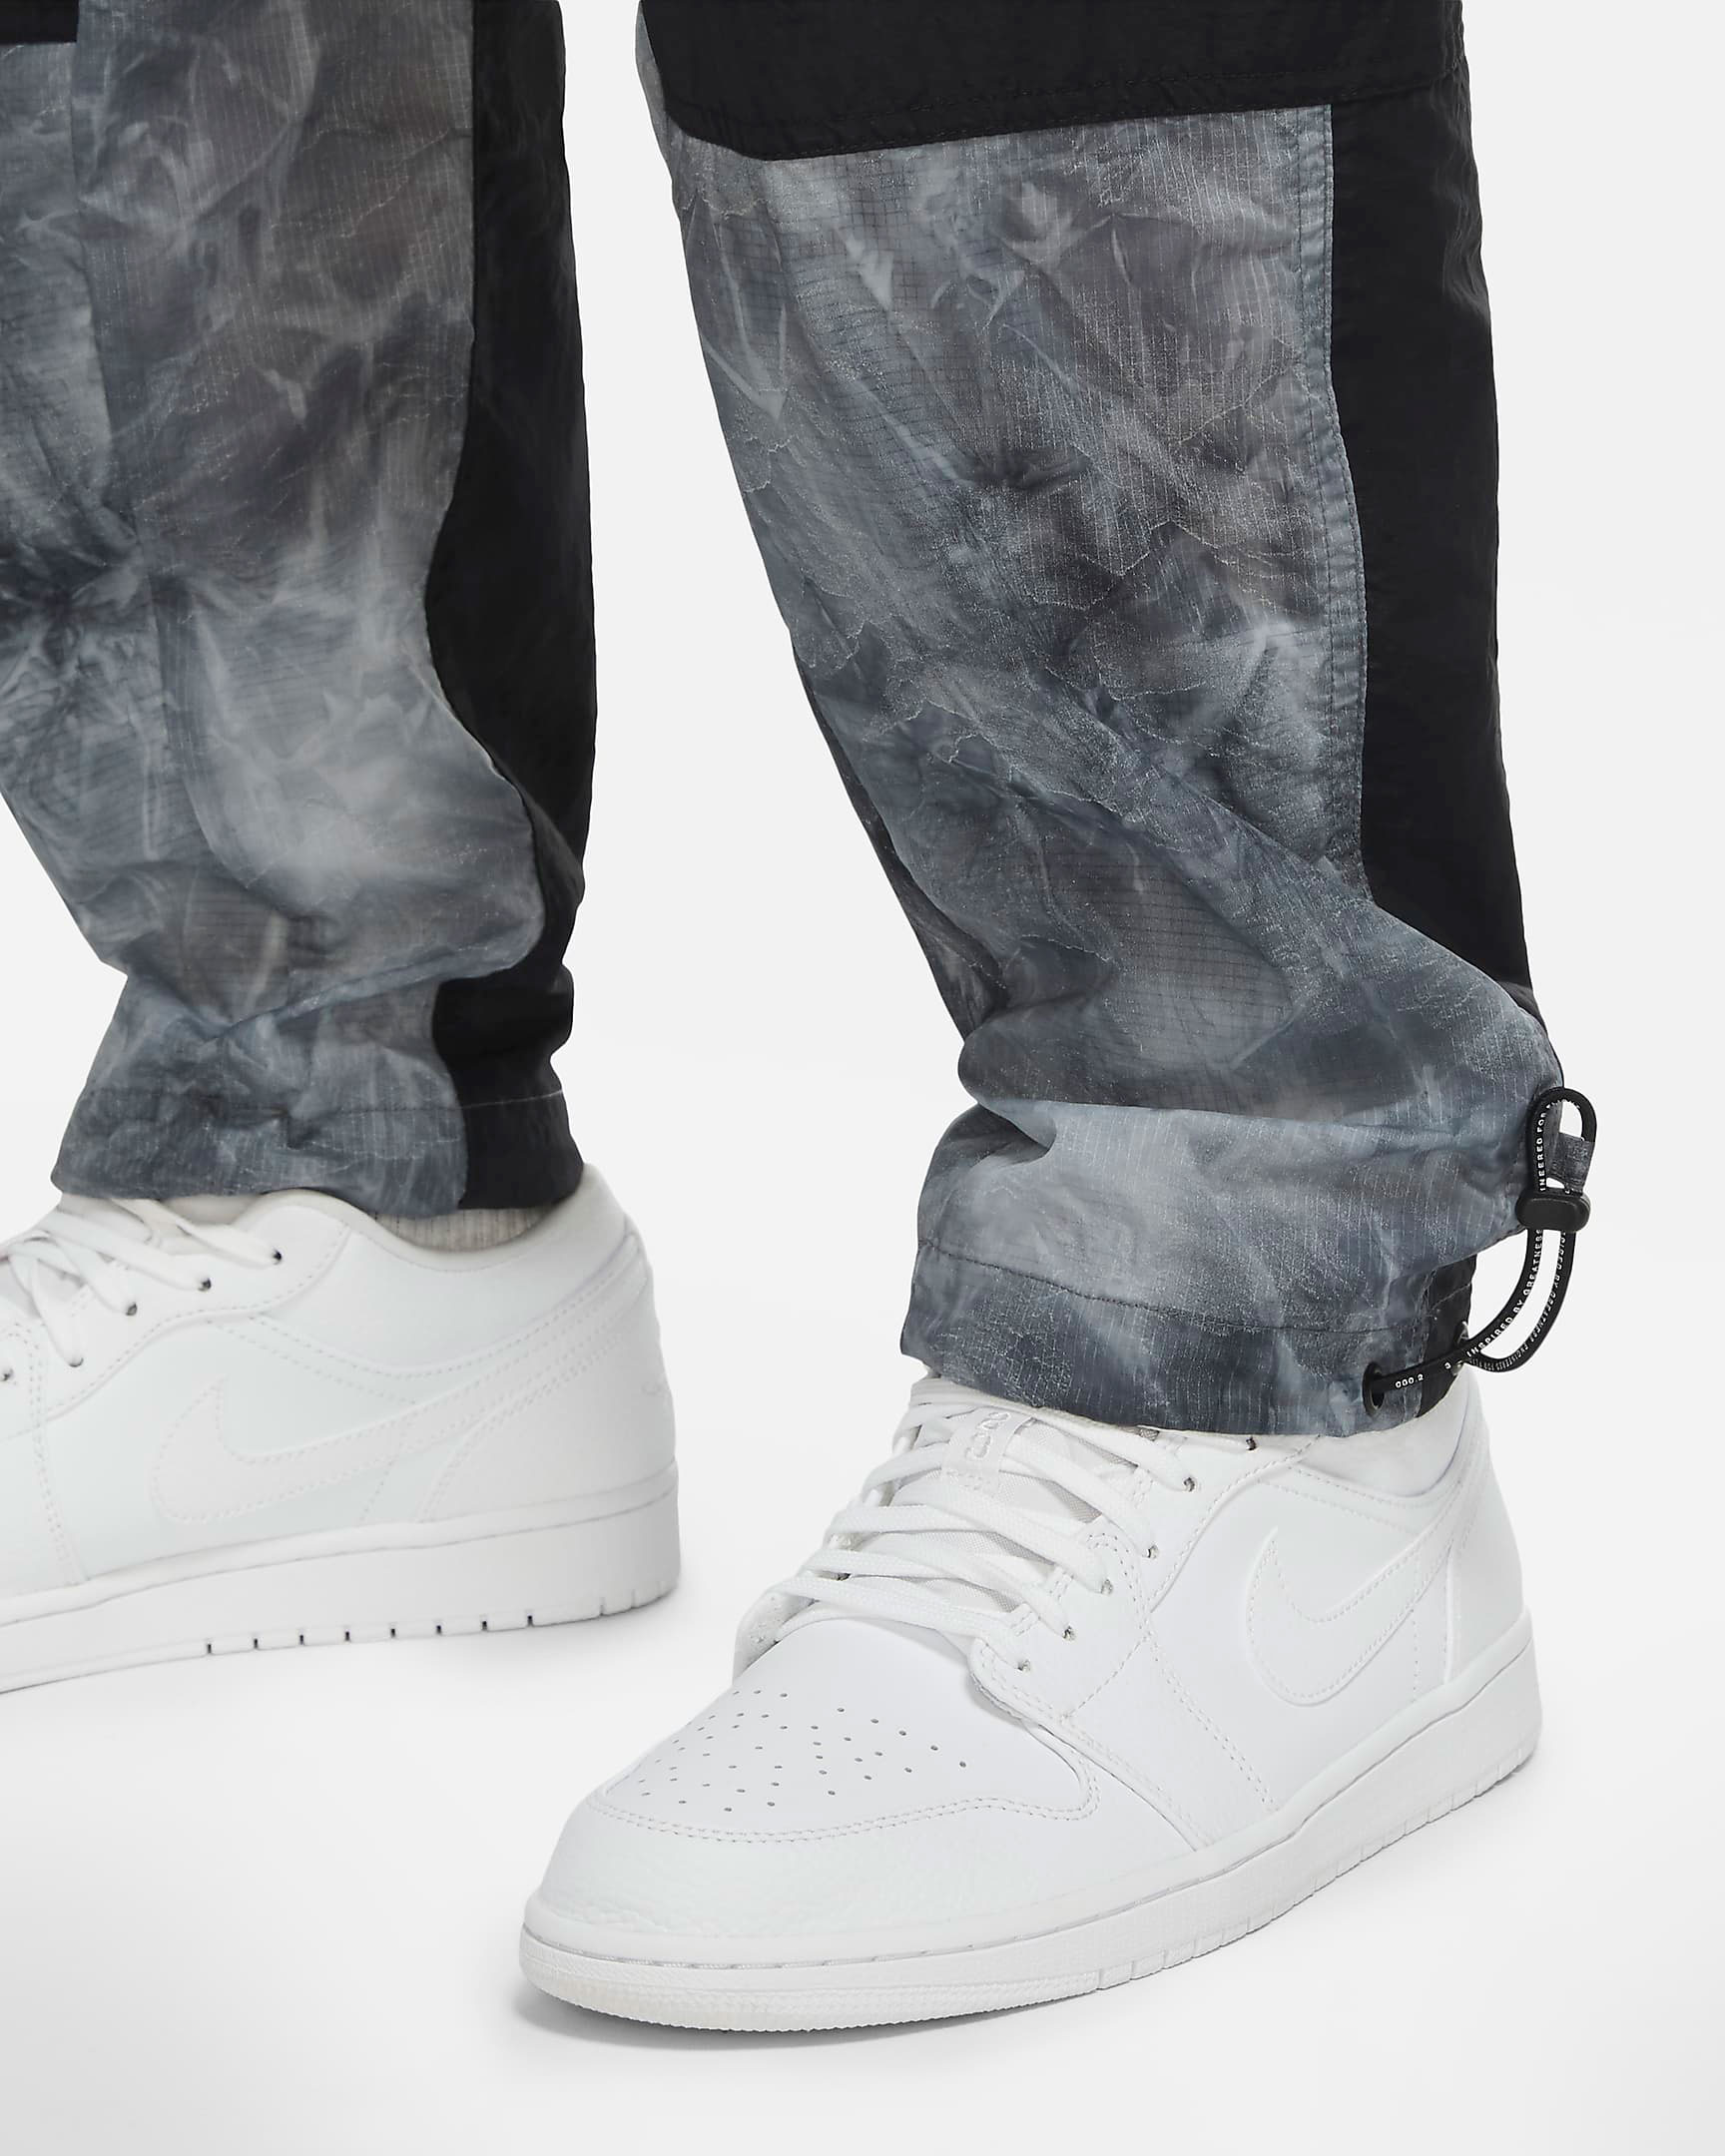 air-jordan-11-jubilee-cargo-pants-match-6